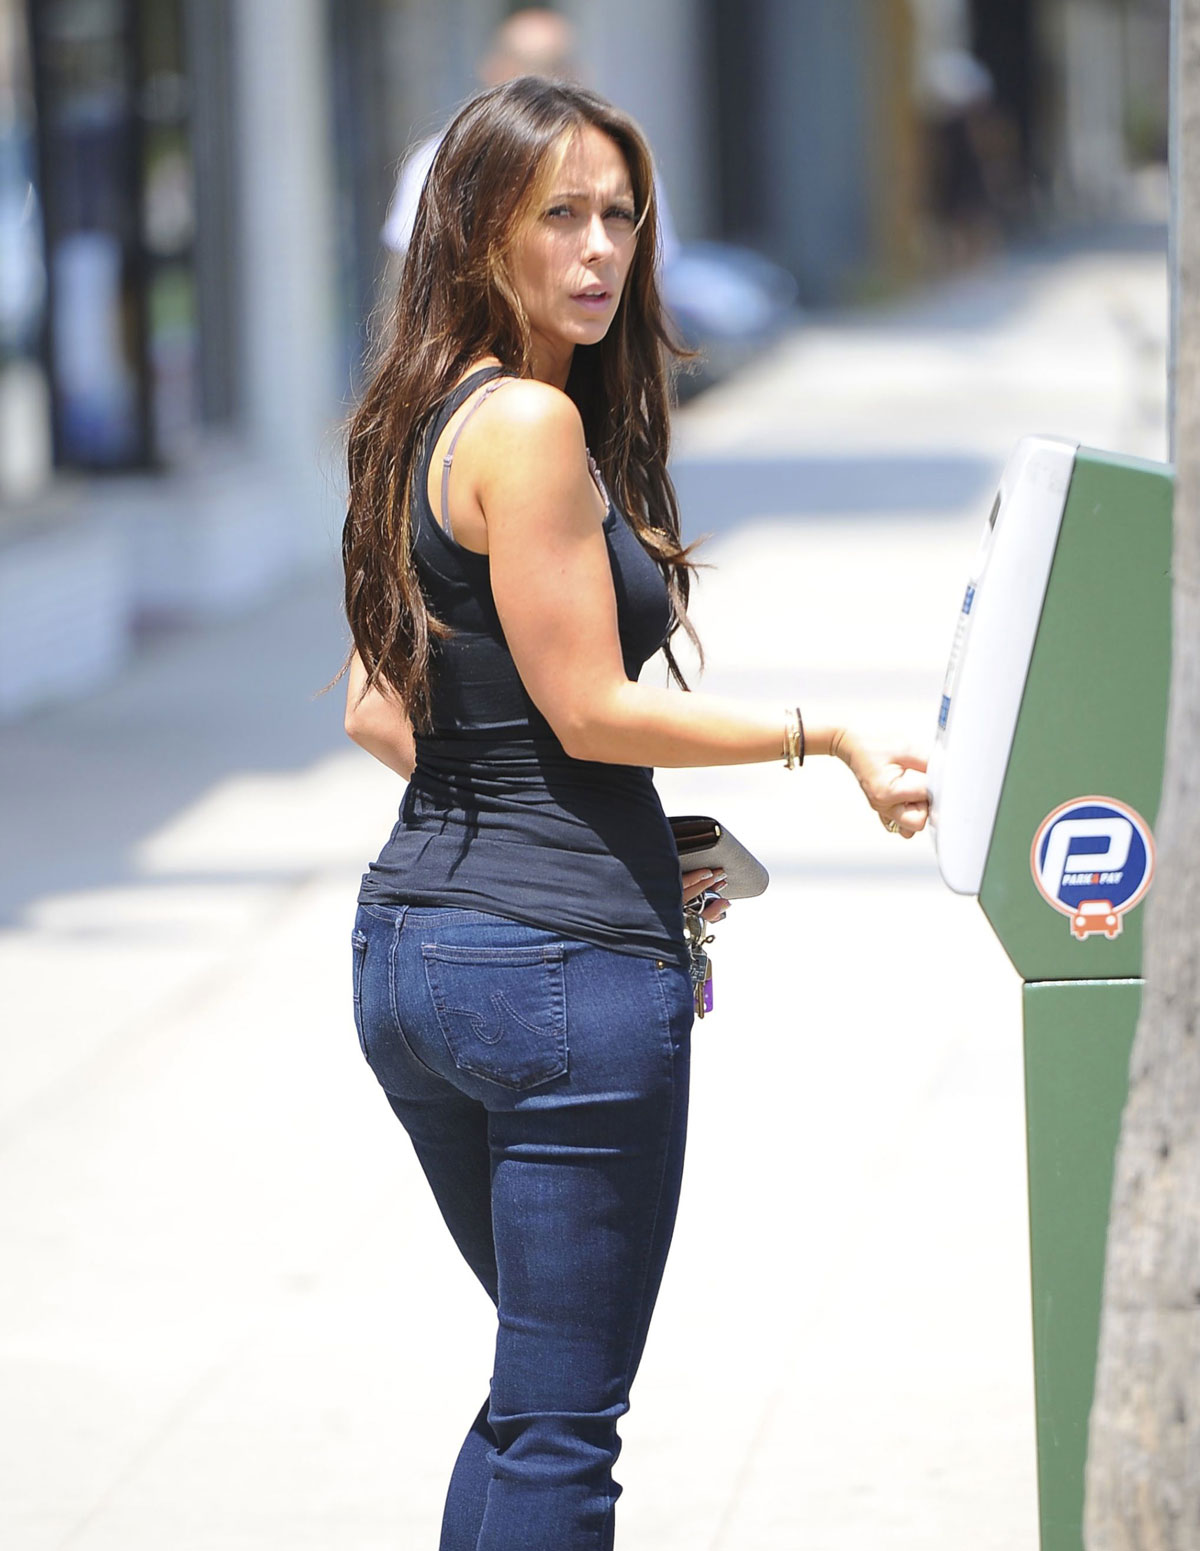 jennifer love hewitt ass galleries jpg 1080x810